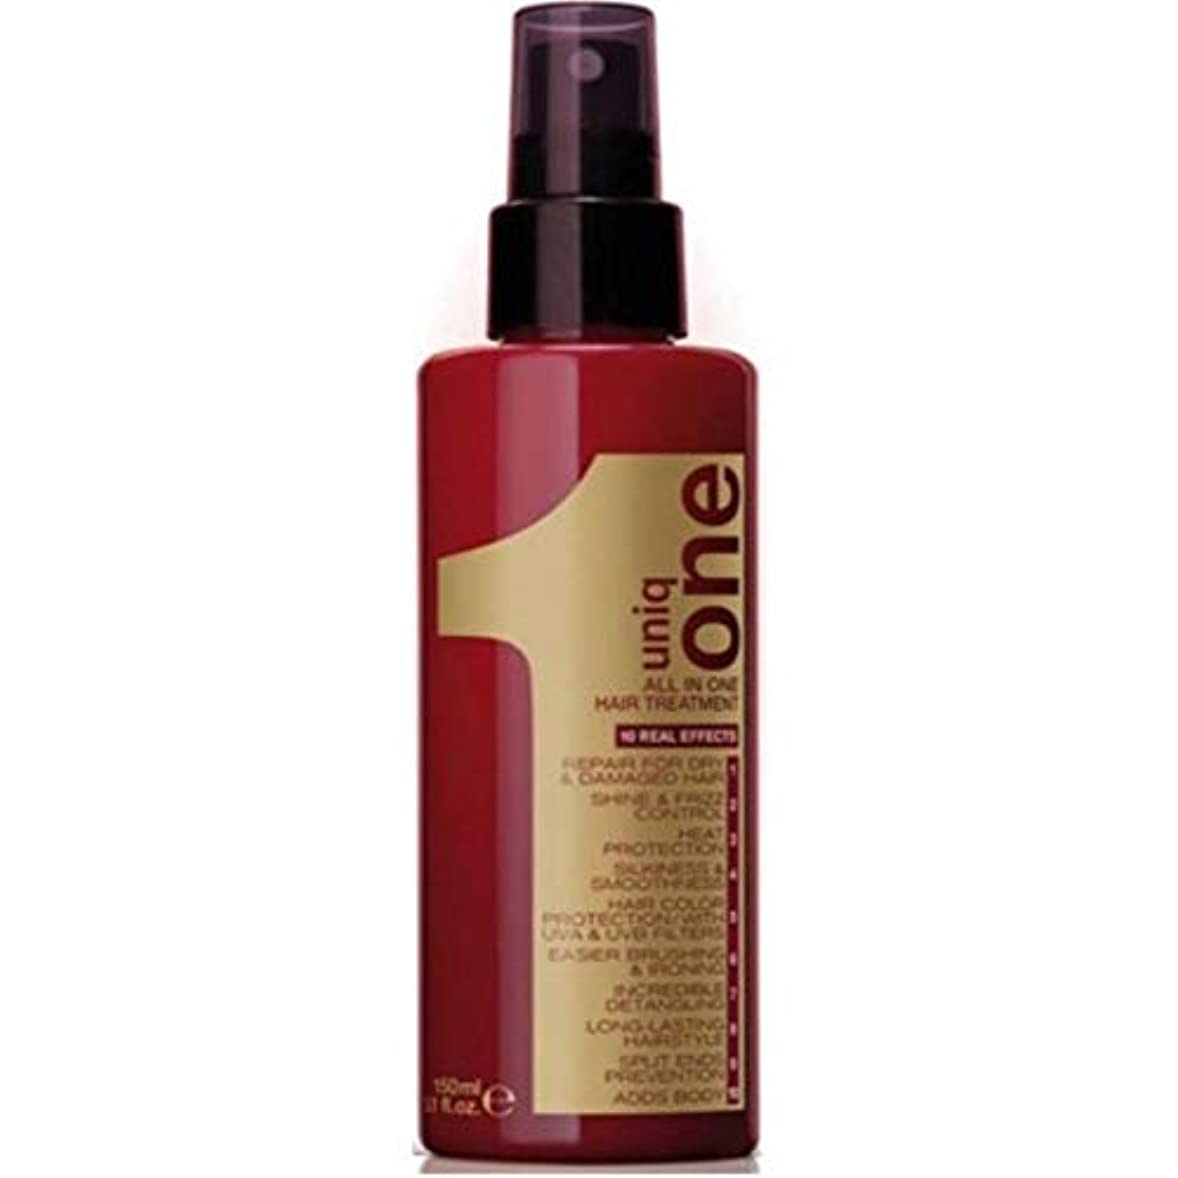 満足できる形成メモUniq One Revlon All In One Hair Treatment 5.1Oz. - New Original by Uniq One by Uniq One